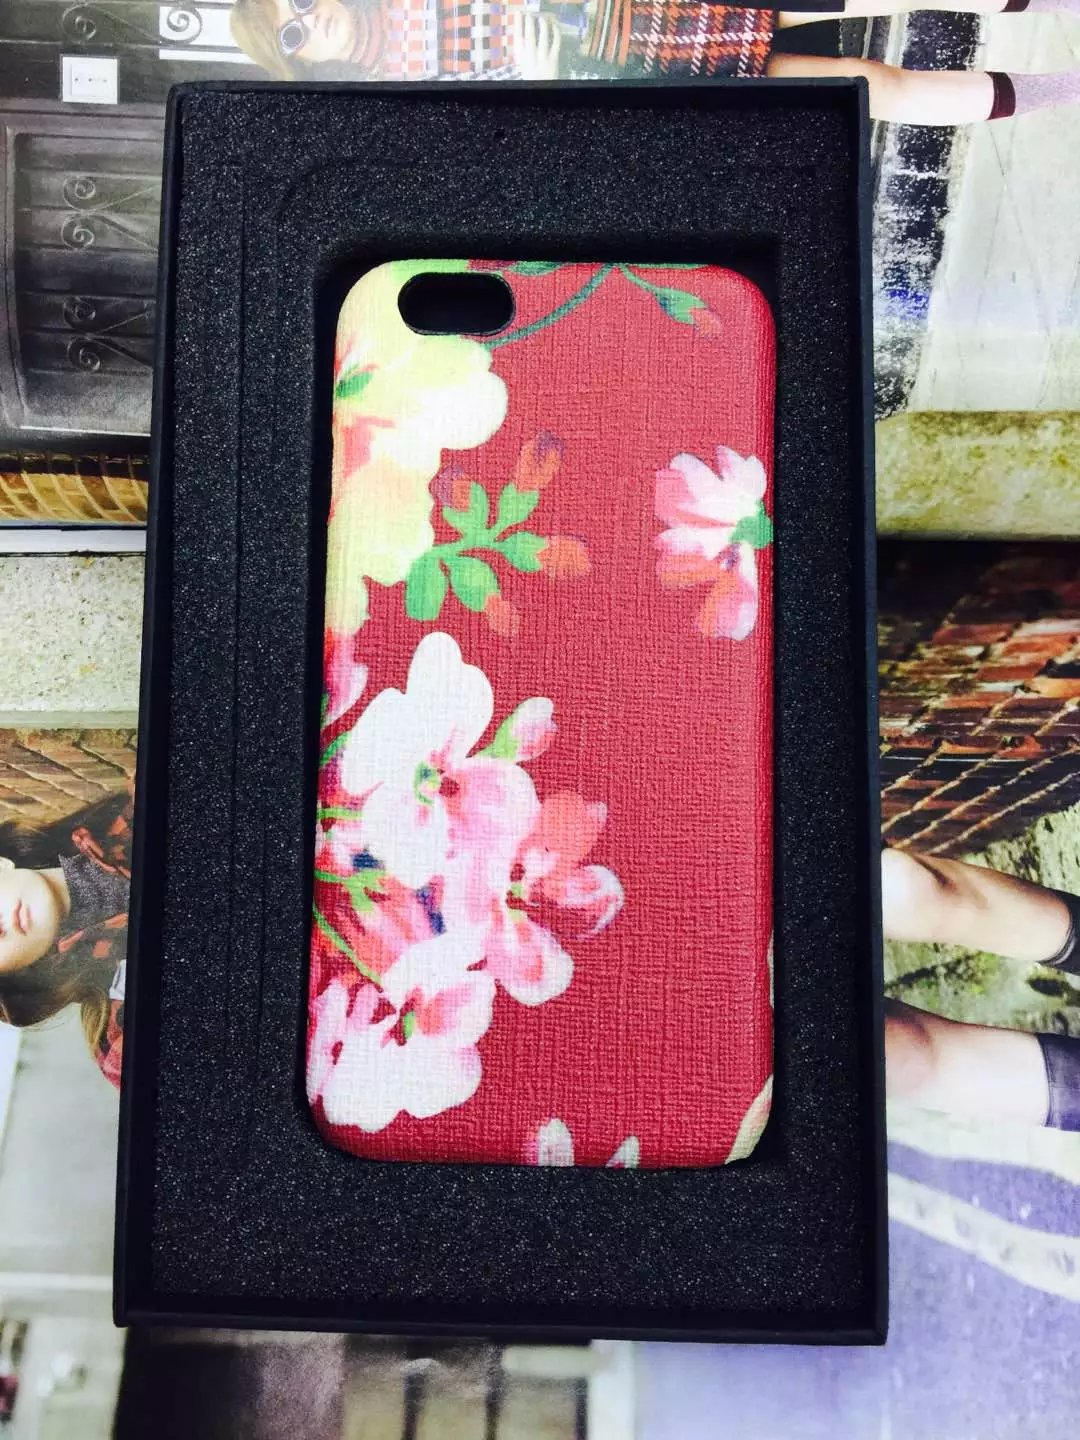 make your own case for iphone 6s unique iphone 6s cases fashion iphone6s case iphone 6s 6s case tory burch ipad 2 case case iphone 6s 6s iphone hard case best iphone 6s case of iphone 6s